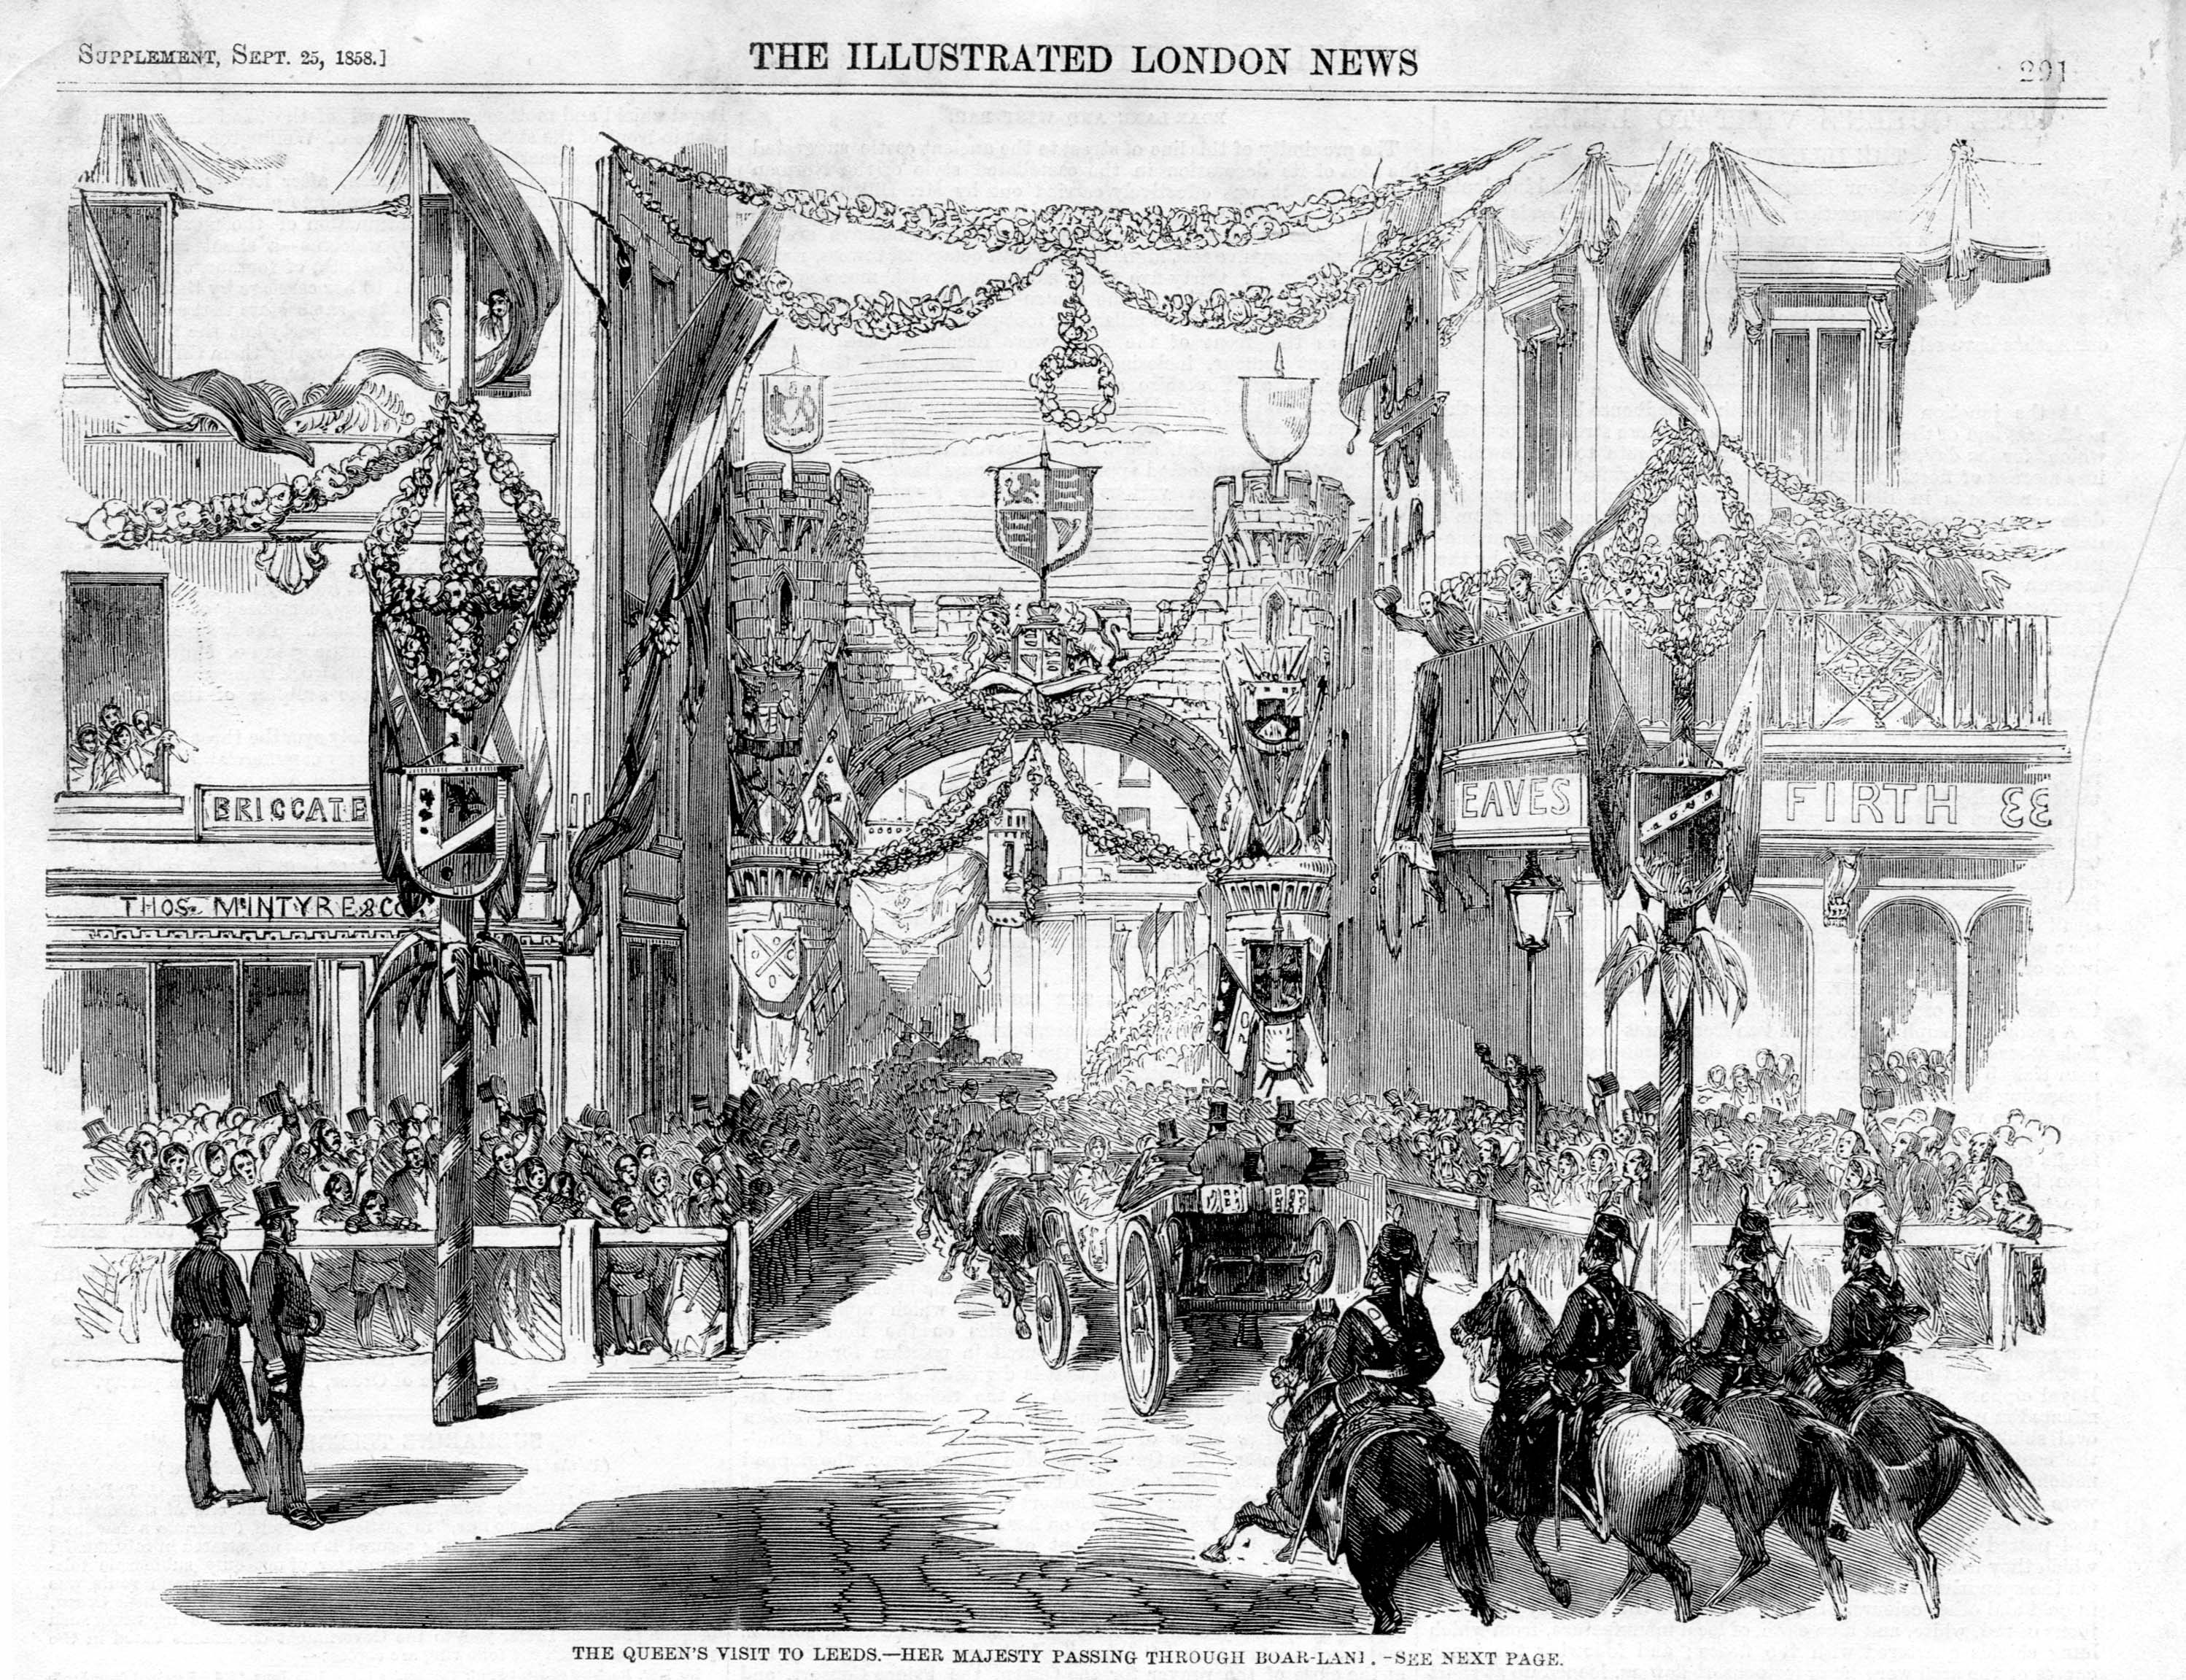 Black and white drawing showing the Queen and her entourage entering the city through an archway